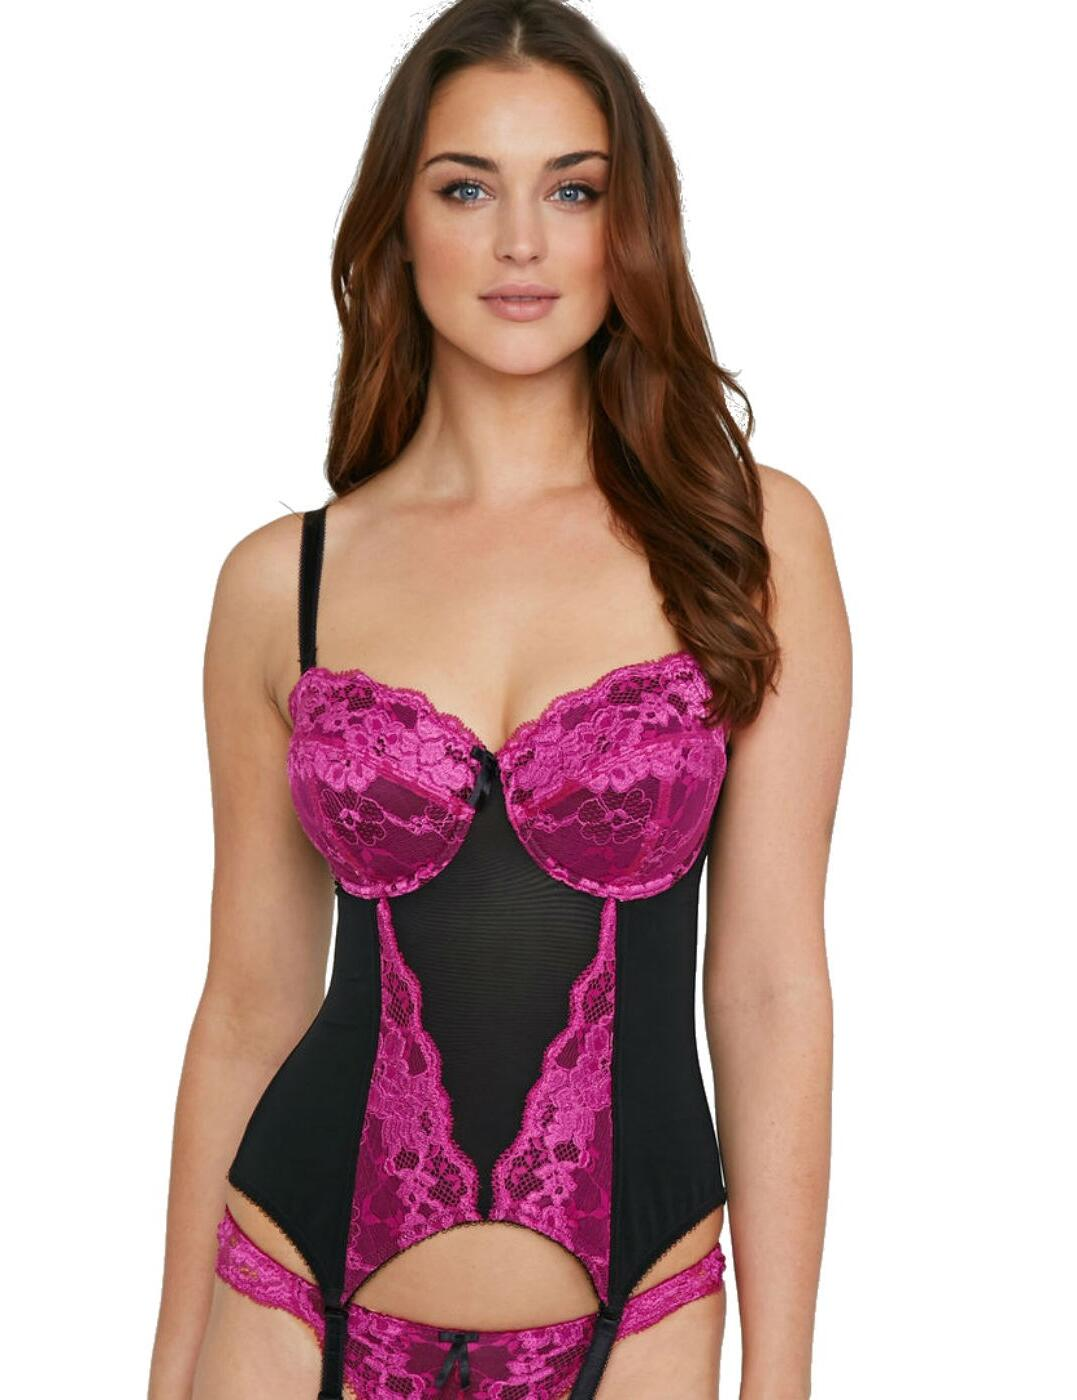 1505 Pour Moi? Amour Padded Basque - 1505 Jewel Pink